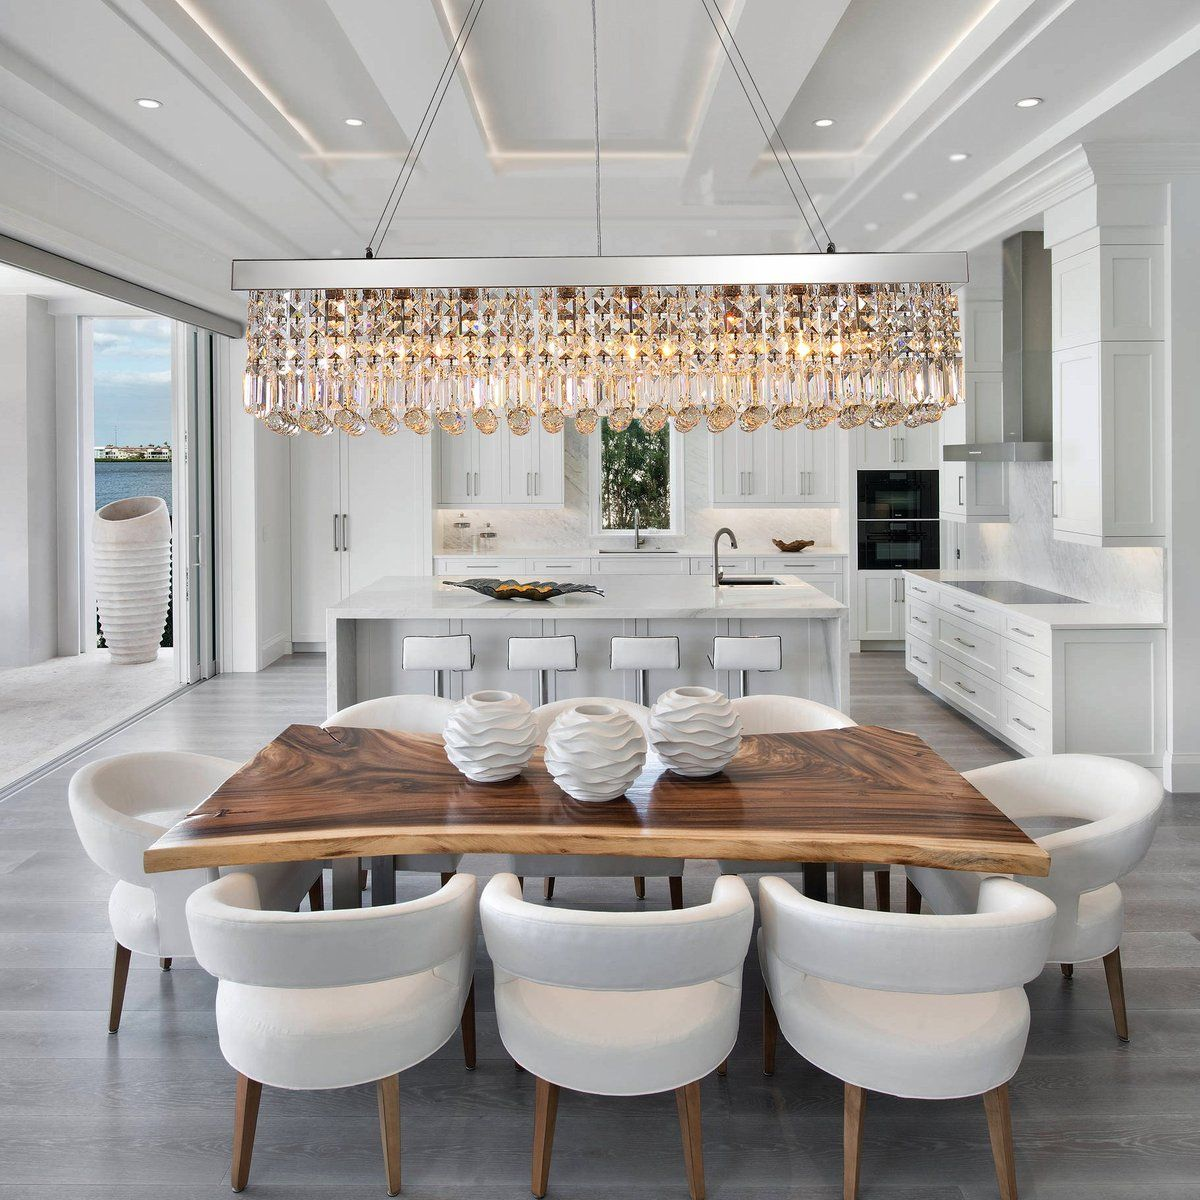 Chandeliers For Dining Room Contemporary: Rectangular Crystal Raindrop Chandelier Dining Room In